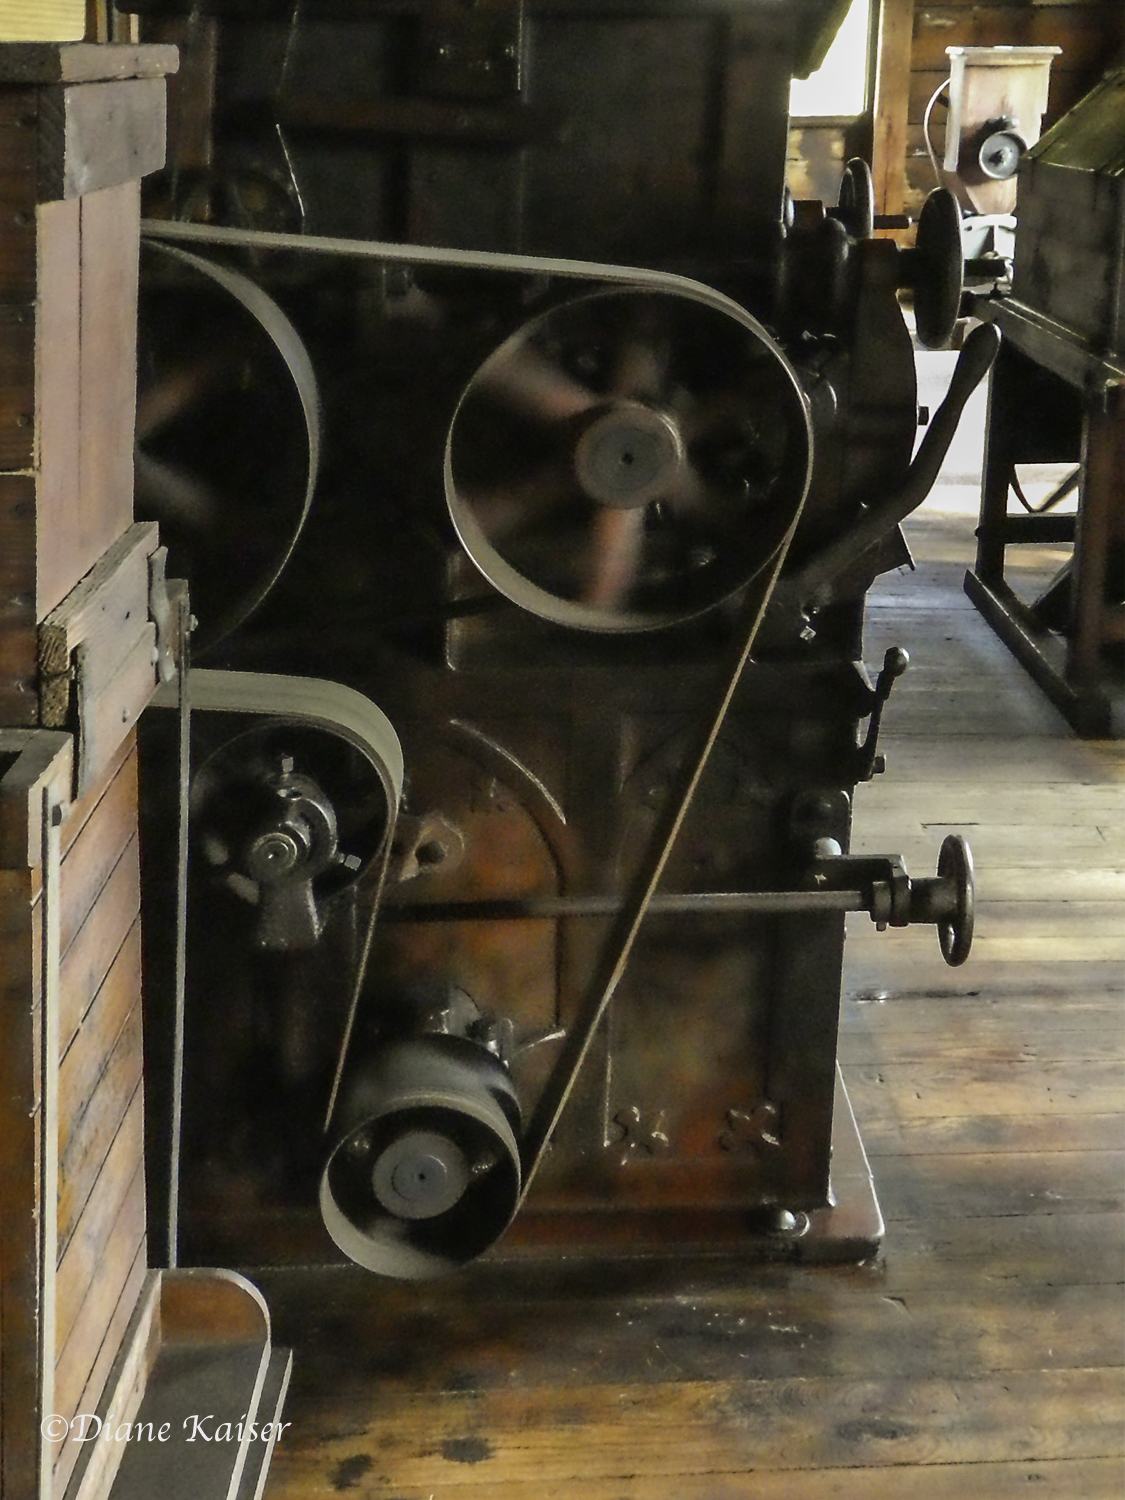 Dillard Mill is one of the few restored and fully operational mills. All of the original equipment remains in place.